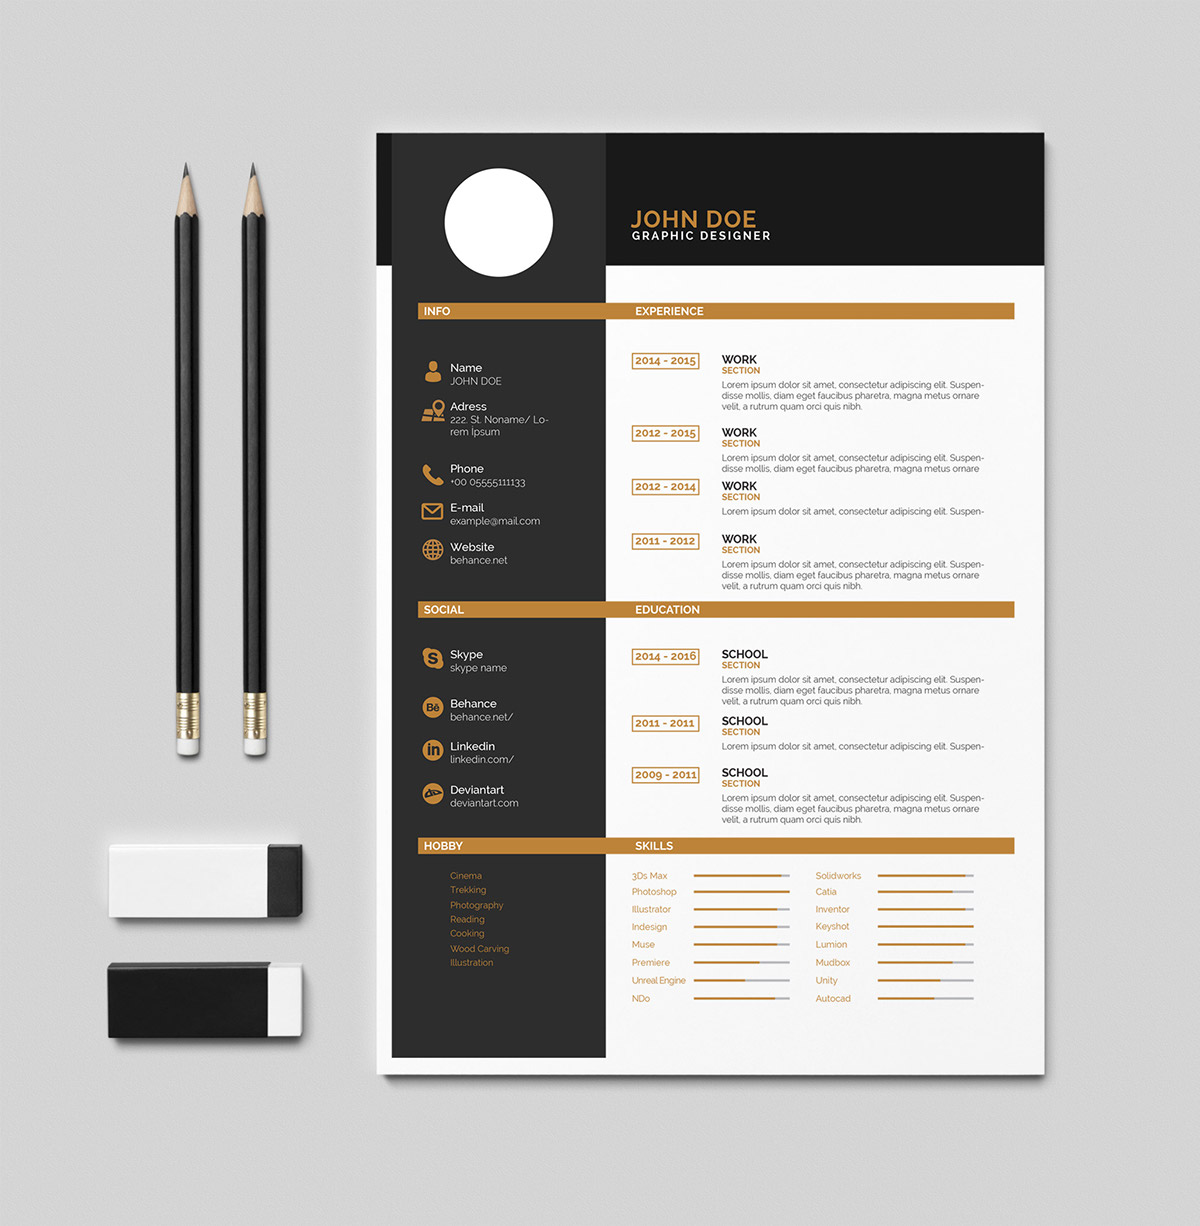 Exceptional Free Cv (Resume) İndesign + PDF Template On Behance For Resume In Indesign